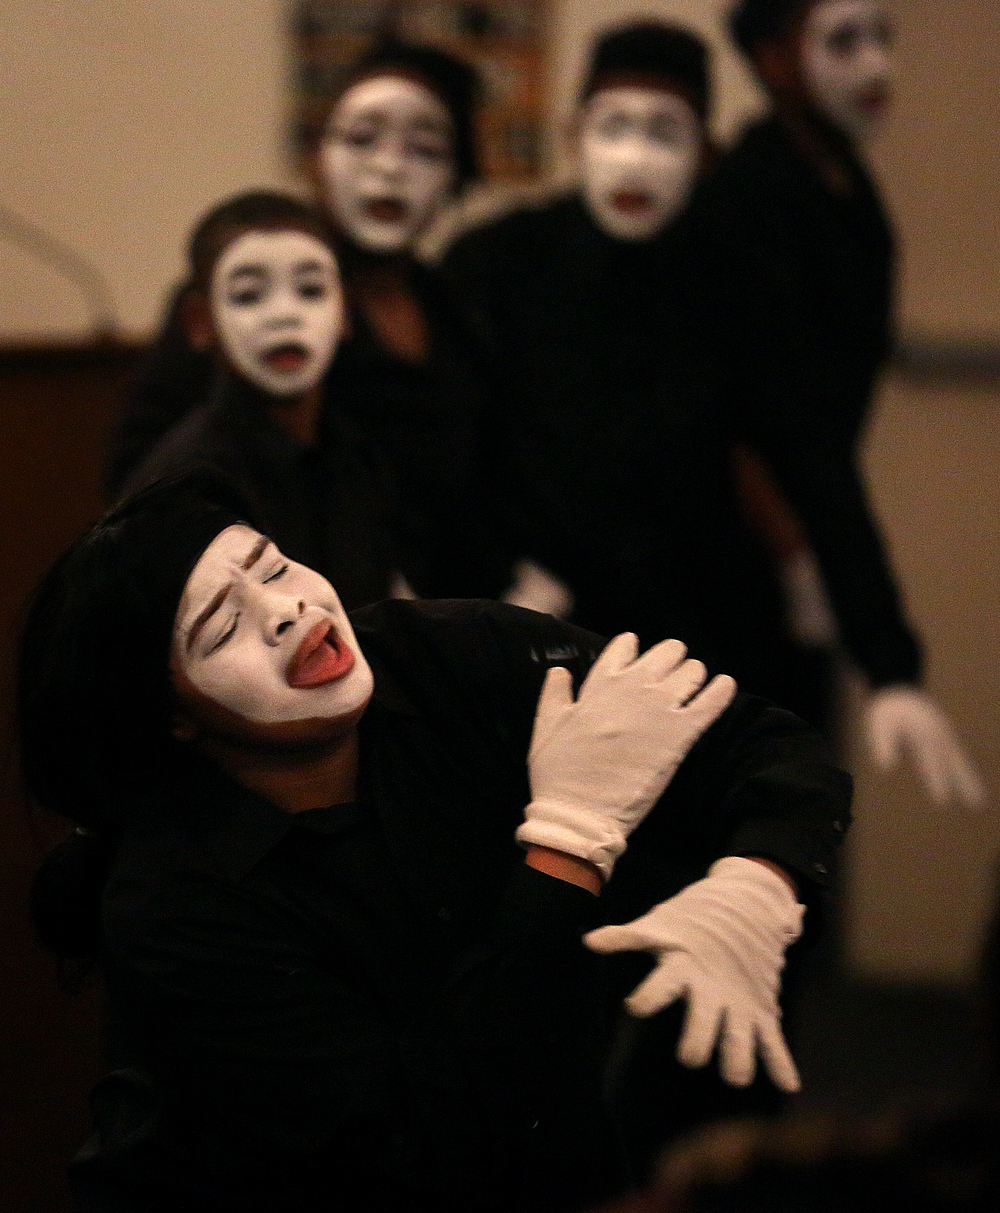 Members of the mime ministry made up of Region II youth members perform. David Spencer/The State Journal-Register